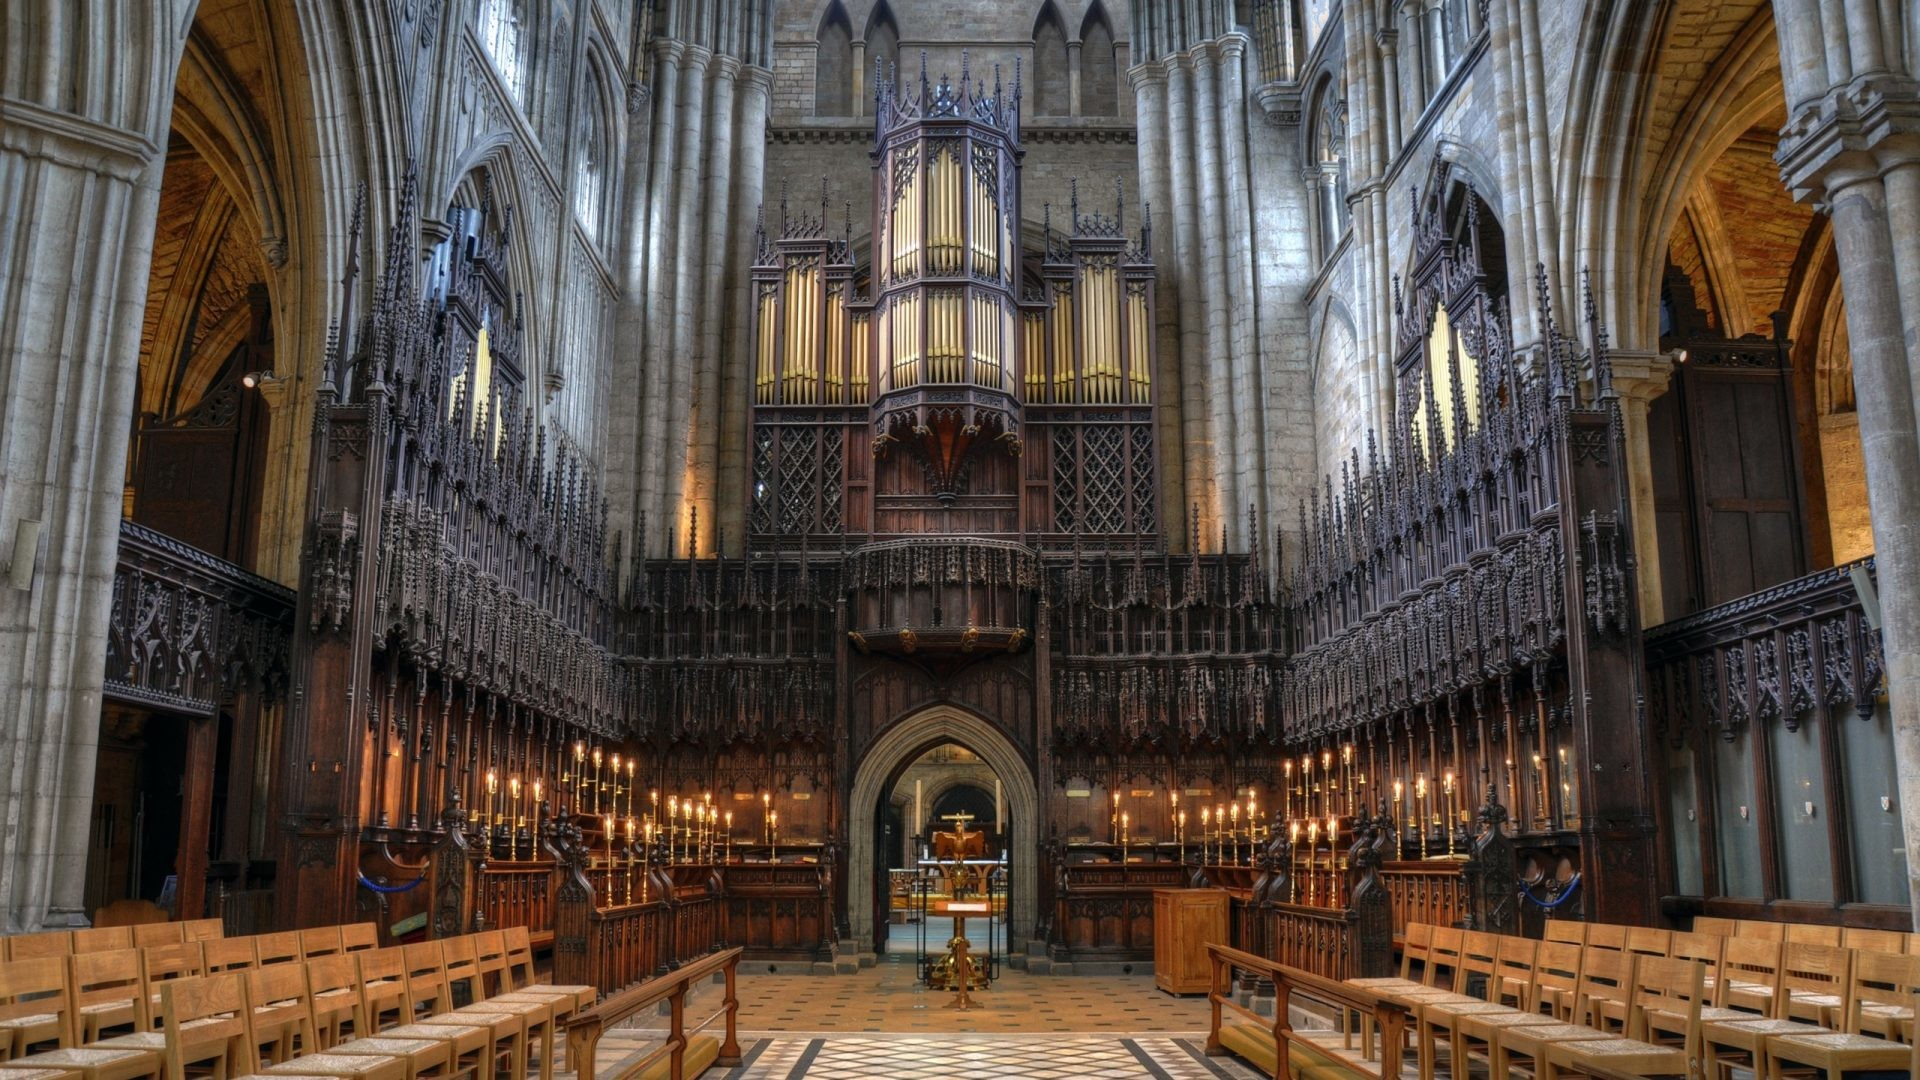 1920x1080 Medieval - Ripon Cathedral Choir Riponcathedralchoir Wide Stained Medieval  Glass Hall Organ Chairs Architecture HD Wallpapers